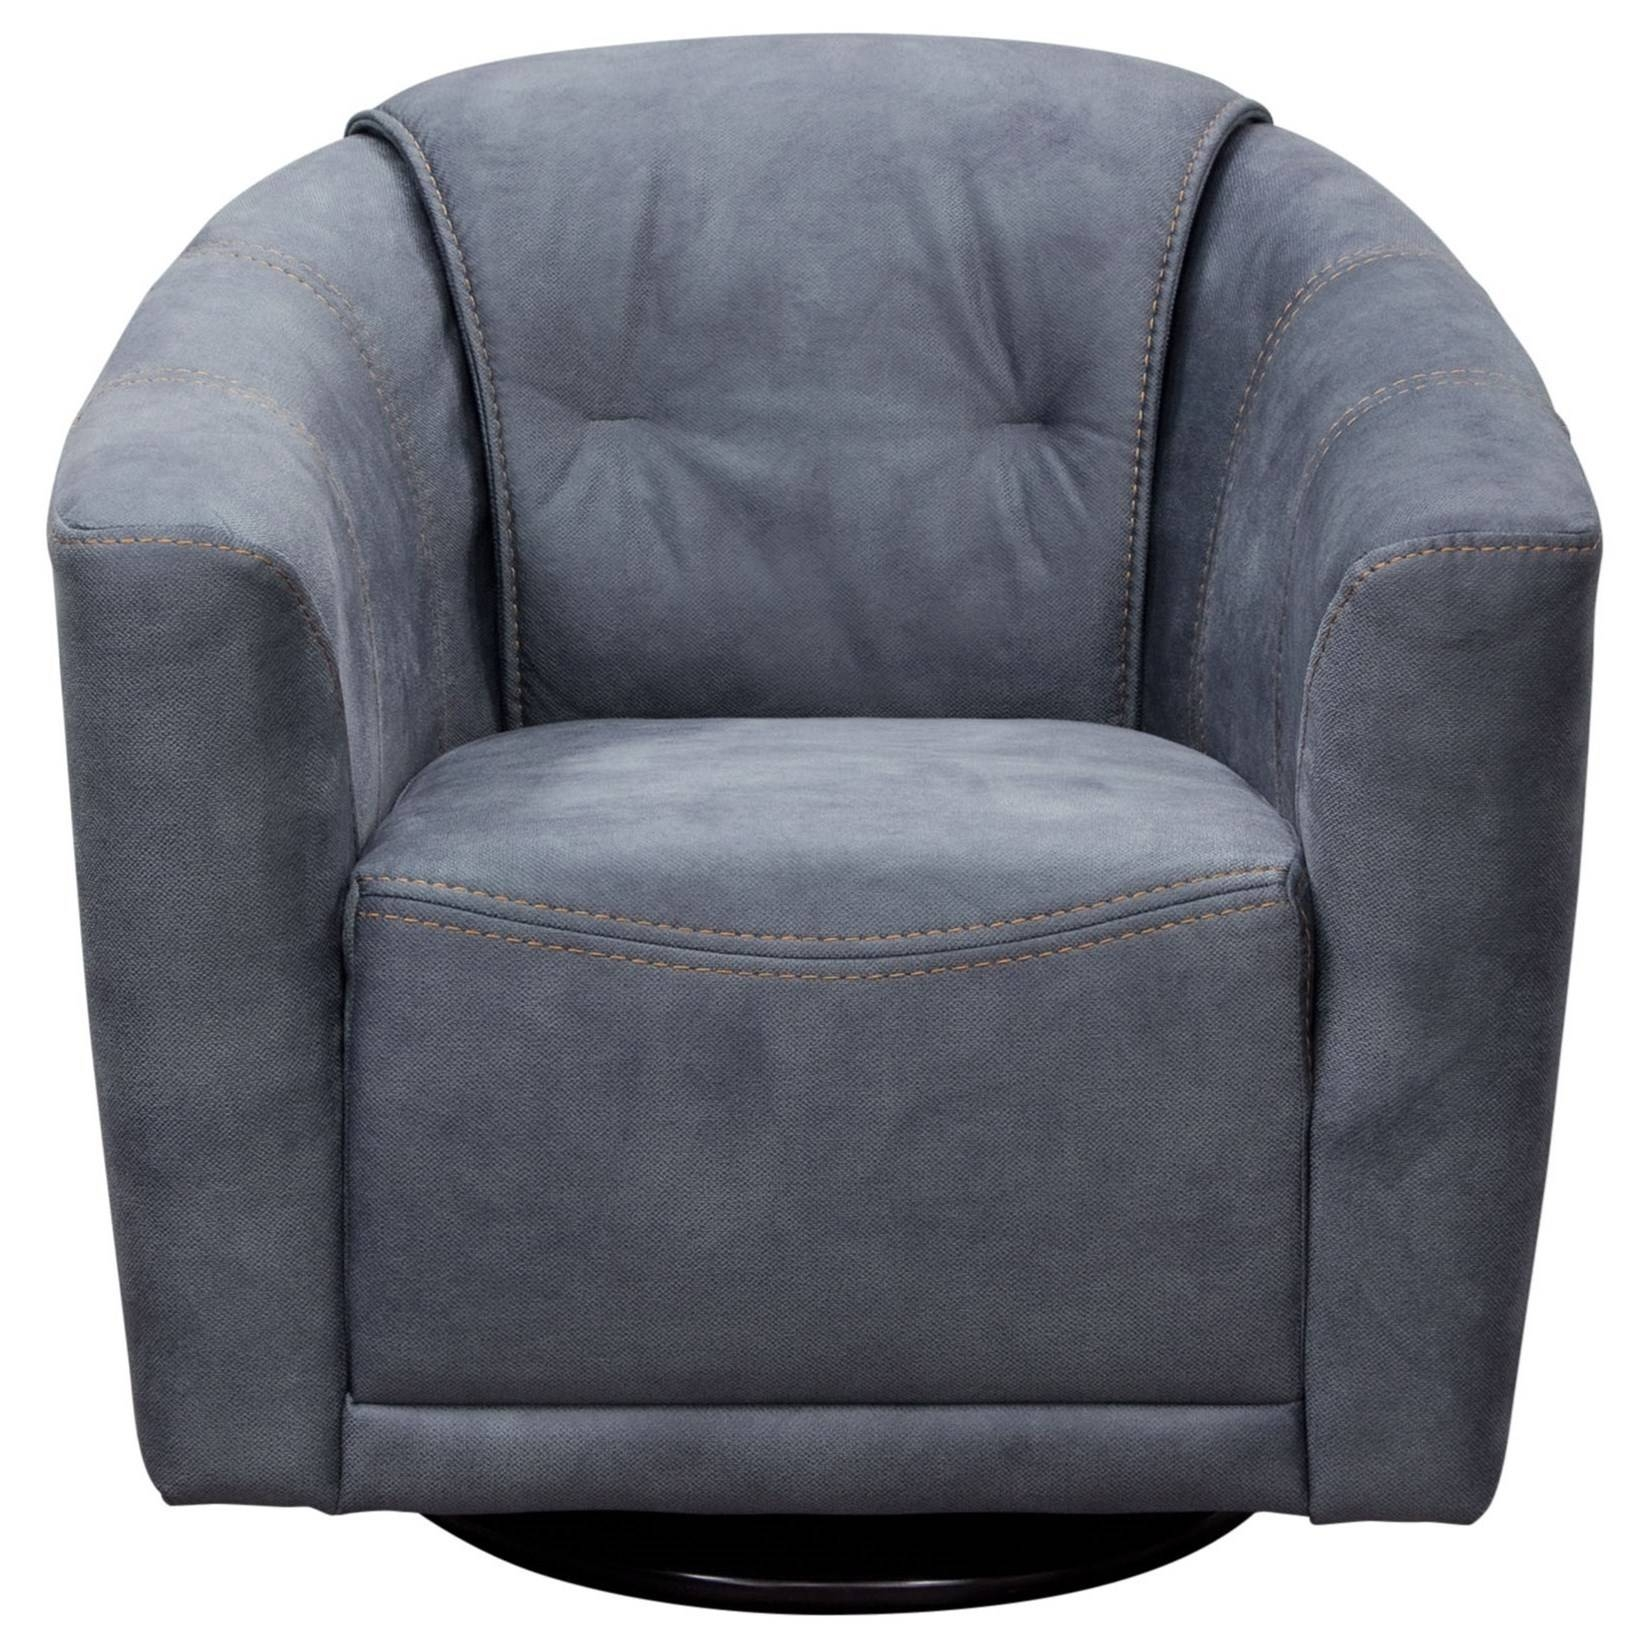 Diamond Sofa Accent Chairs Murphy Swivel Chair - Red Knot pertaining to Swivel Sofa Chairs (Image 15 of 30)